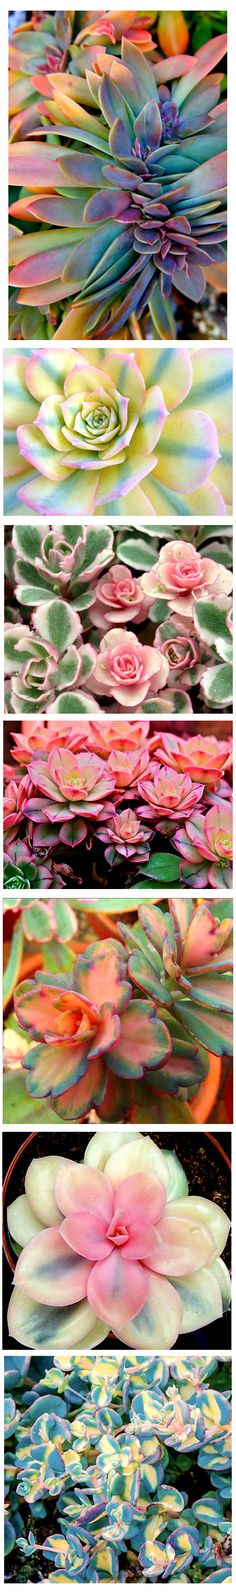 10 Wonderful and Cheap DIY Idea for Your Garden 8 (desert landscape backyard cactus) Succulent Gardening, Cacti And Succulents, Planting Succulents, Container Gardening, Planting Flowers, Pictures Of Succulents, Succulent Ideas, Watercolor Succulents, Flowers Garden